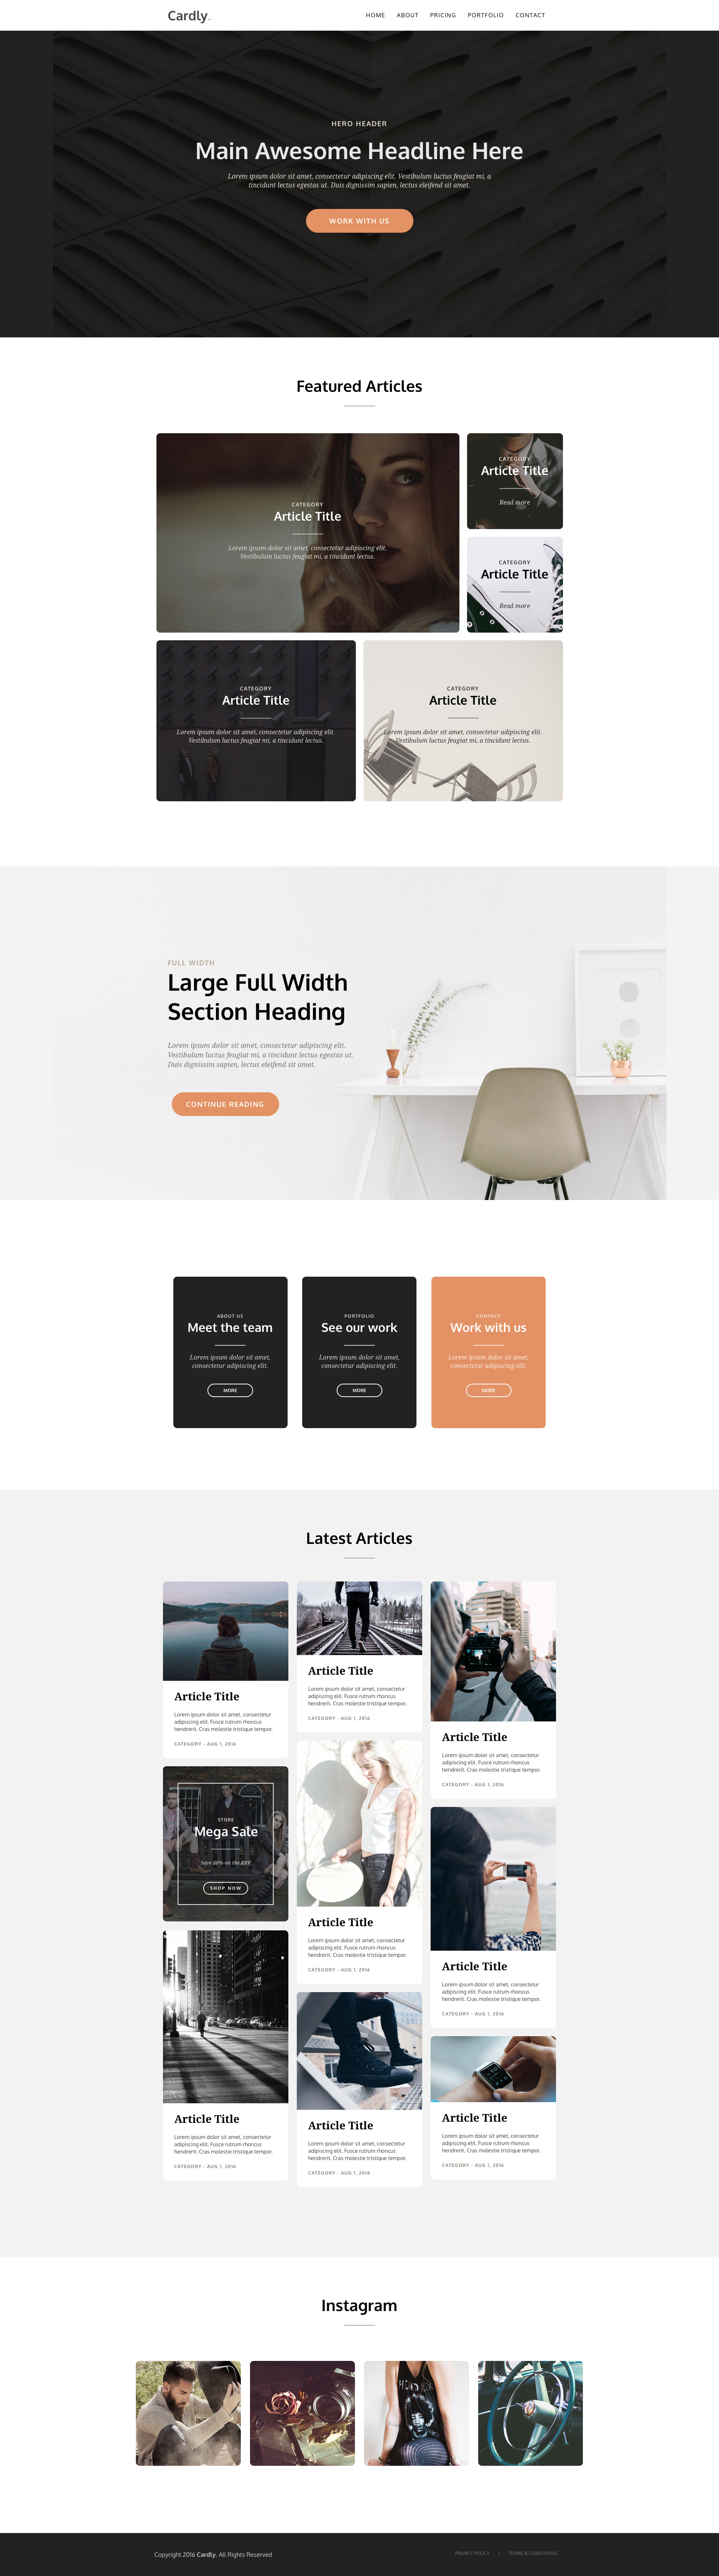 Cardly is a free responsive HTML5 masonry landing page website template uses a card-based layout which makes it very flexible and easy to make responsive across multiple devices and screen sizes. Cardly is a retina ready and fully coded HTML5 and CSS3 masonry template.